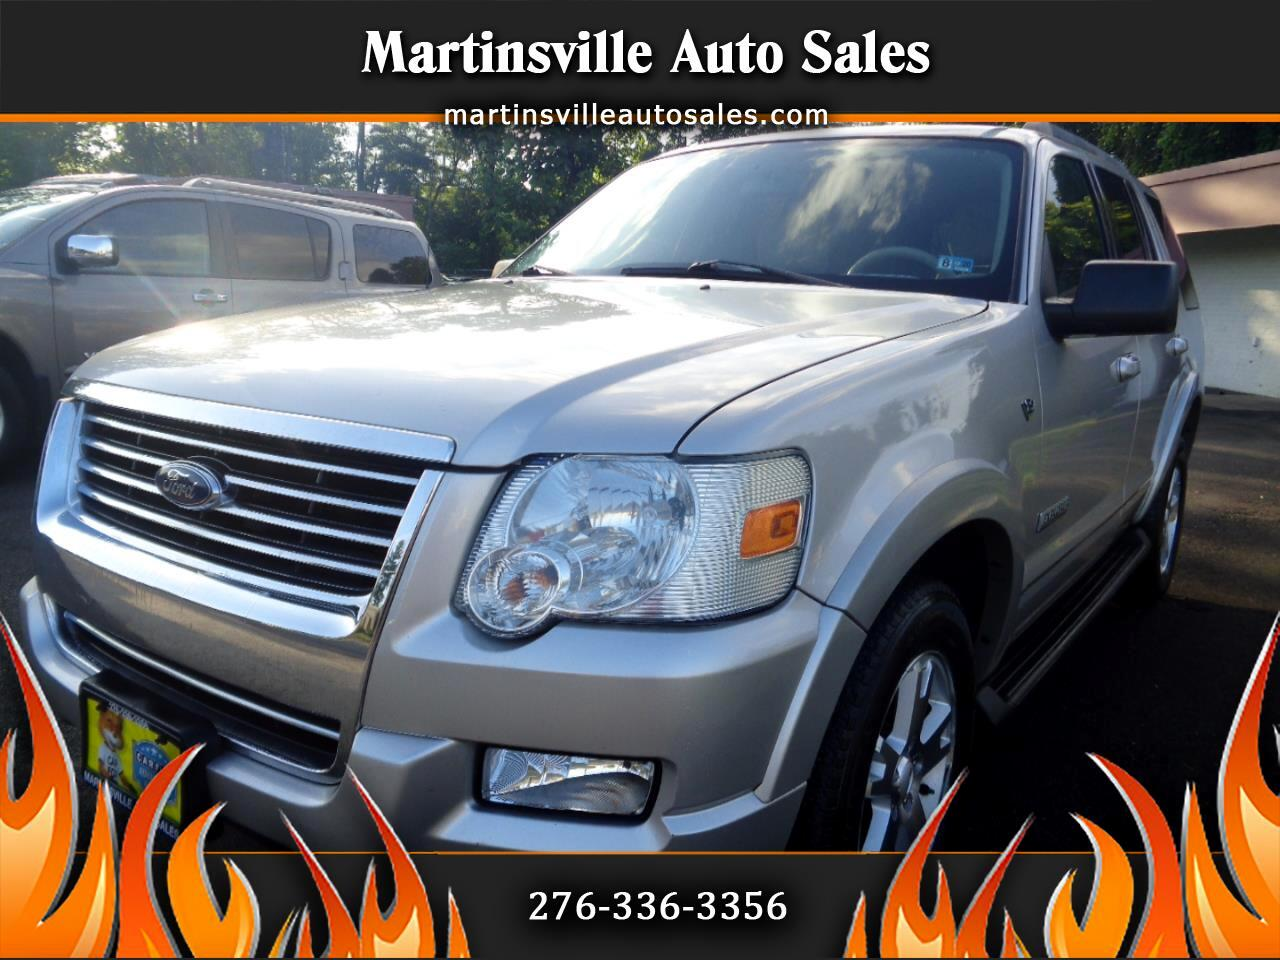 2007 Ford Explorer XLT 4.6L 2WD